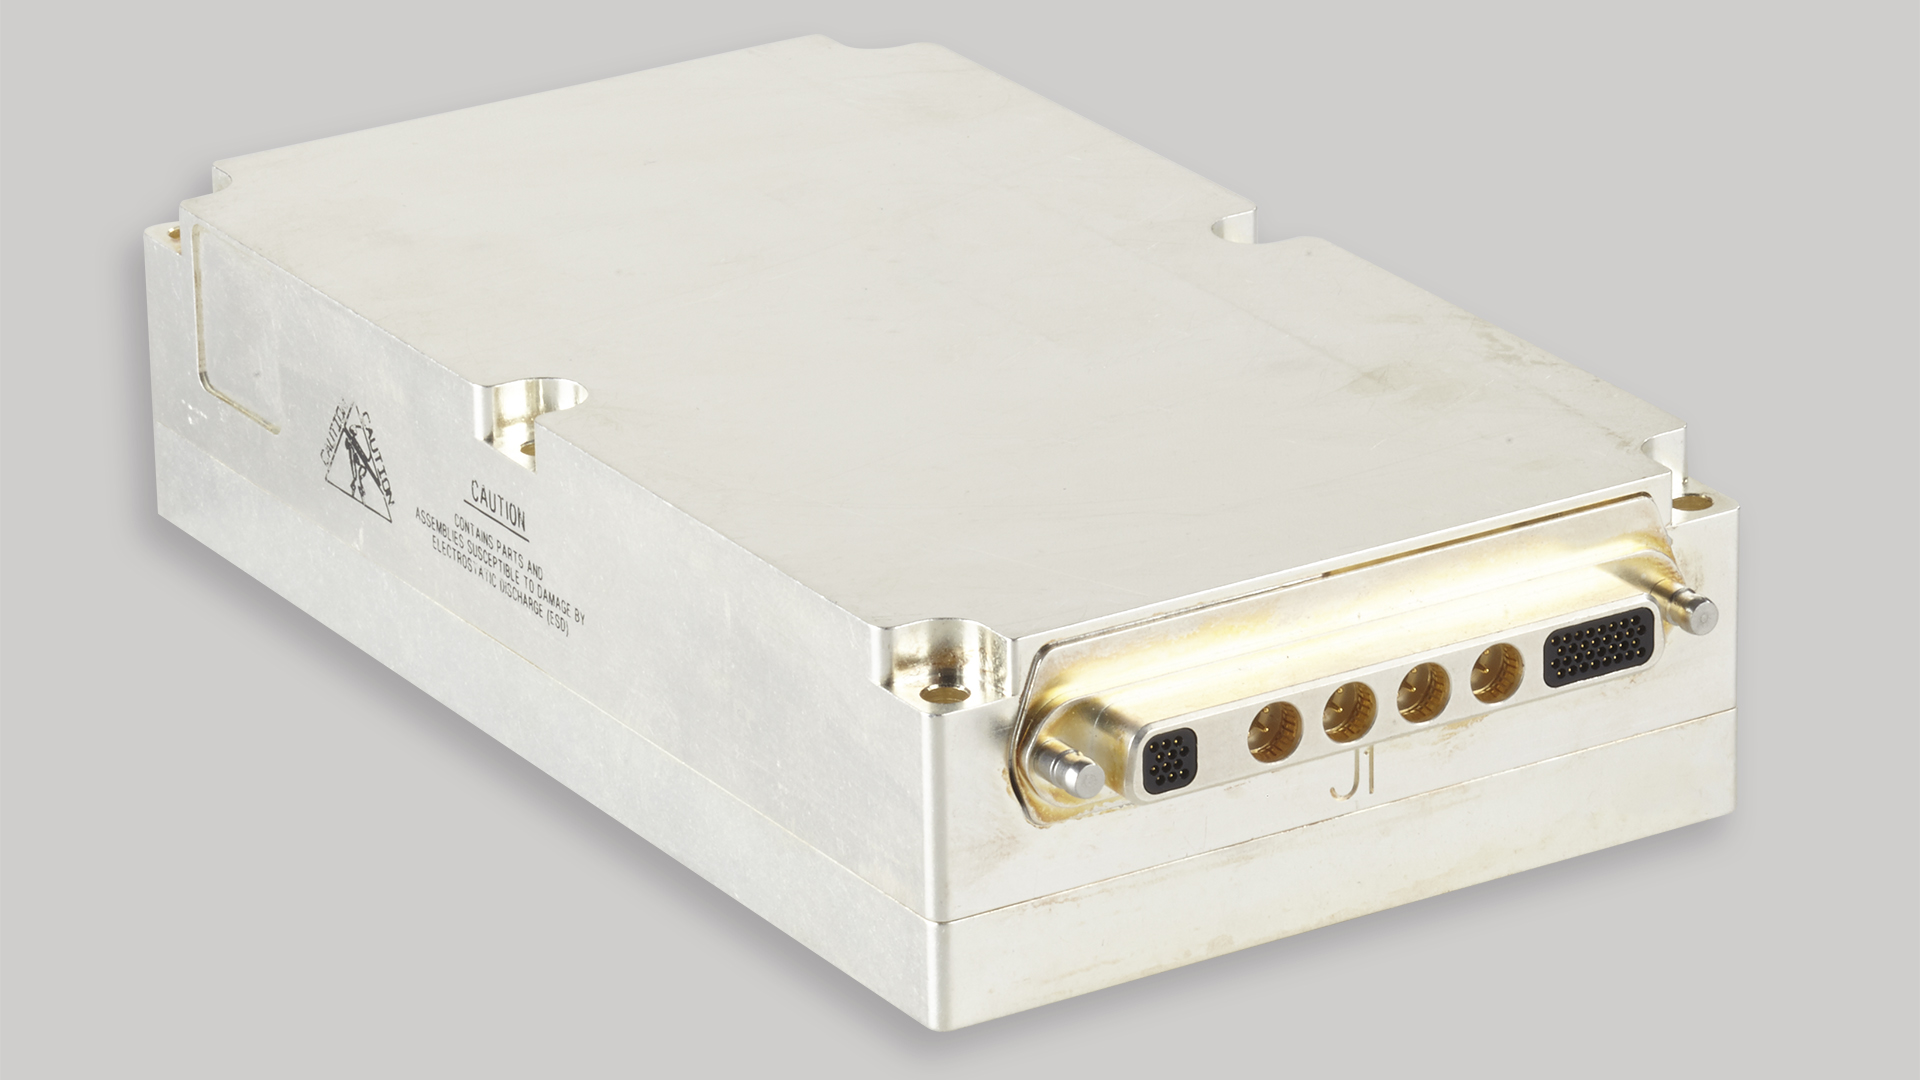 Image of KOV-74 MILS Encryptor box